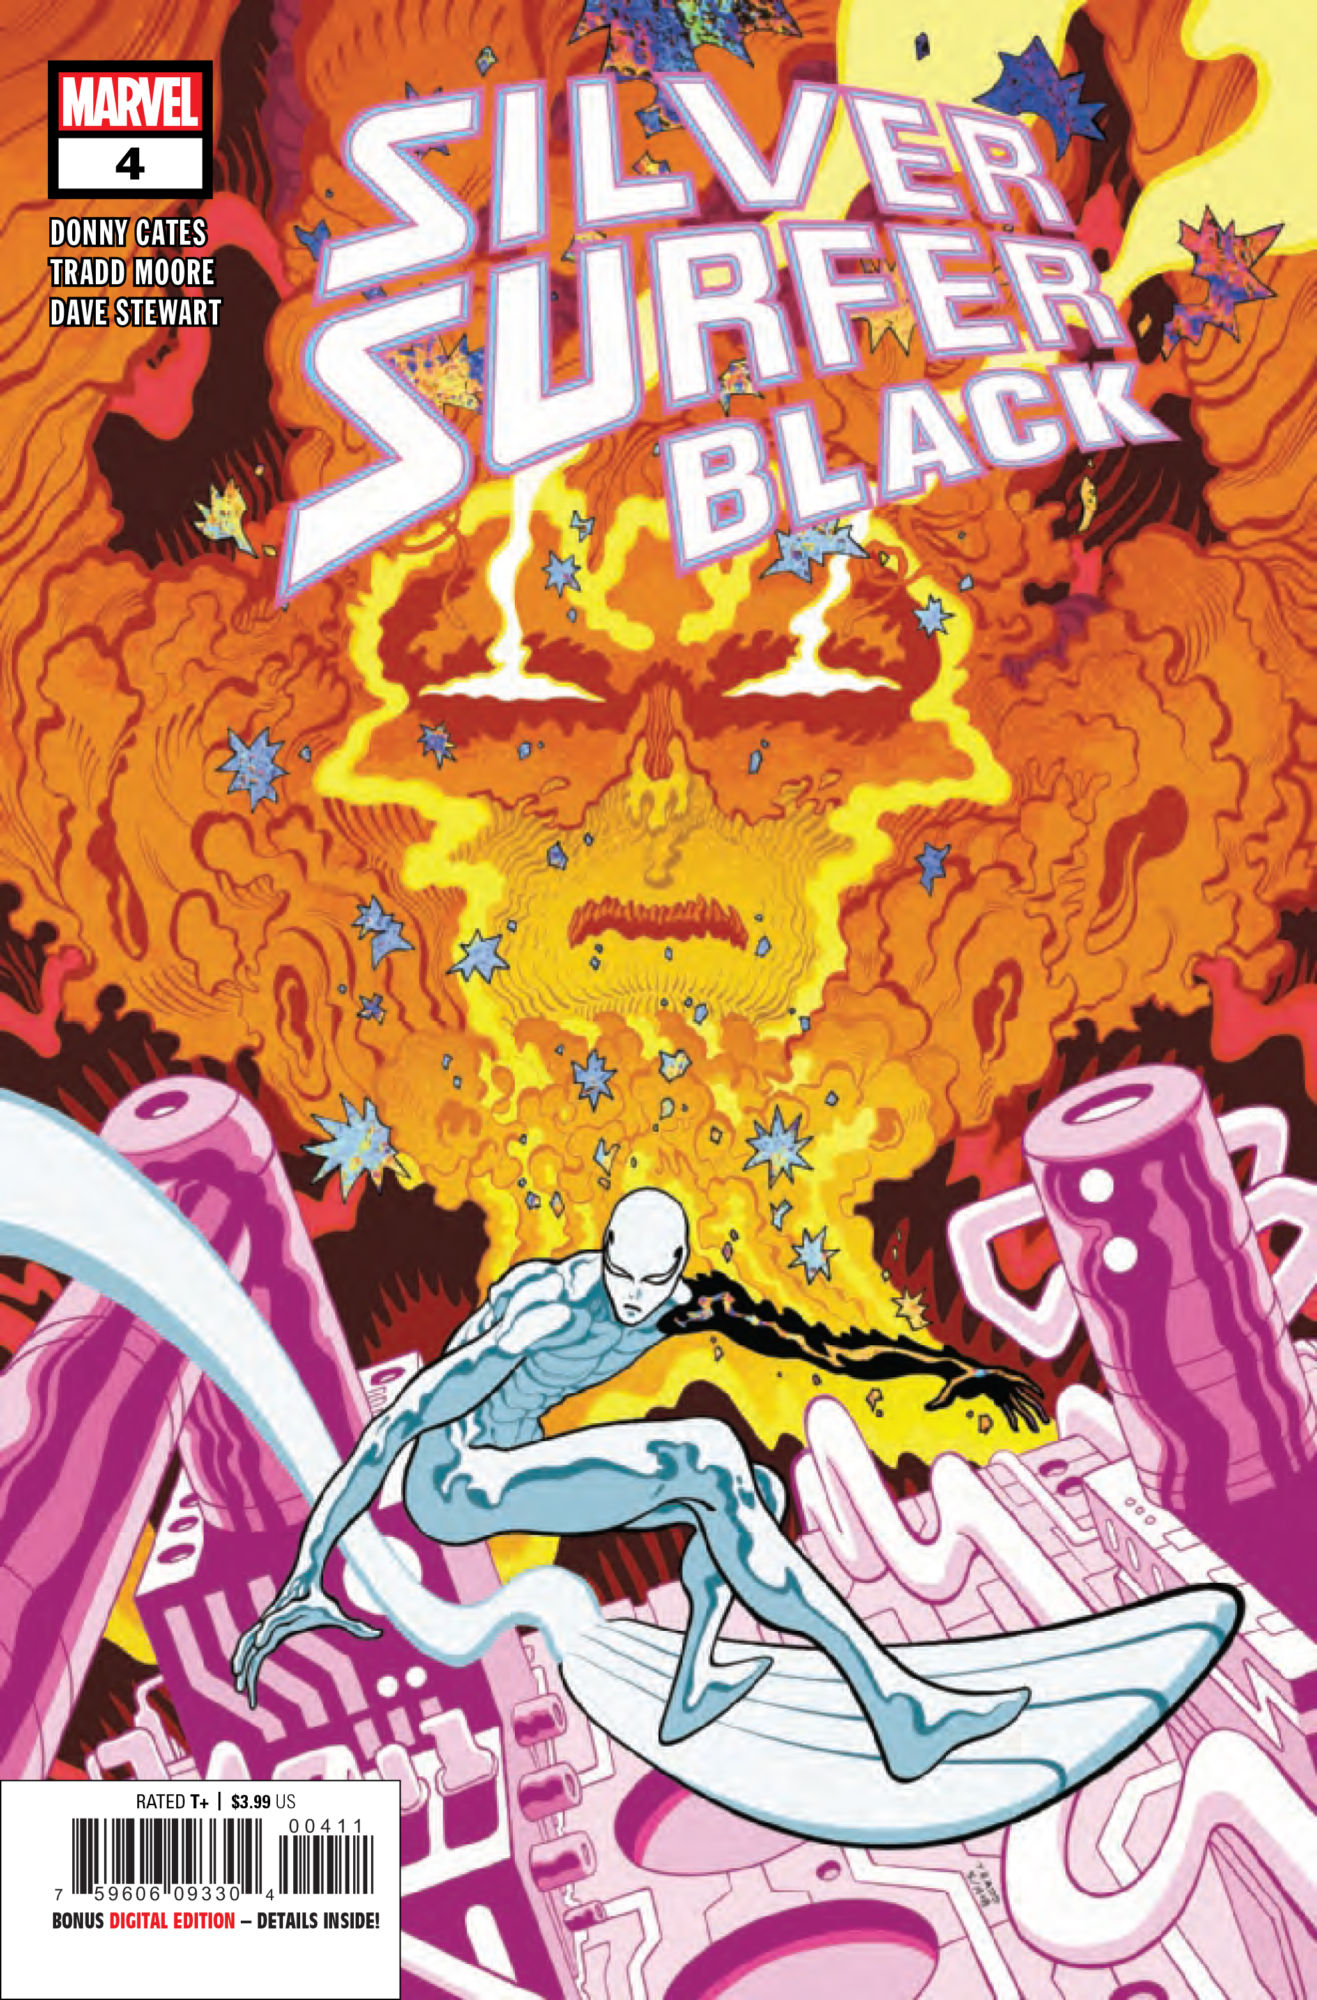 Will the Surfer Kill Baby Galactus in Silver Surfer Black #4? [Preview]